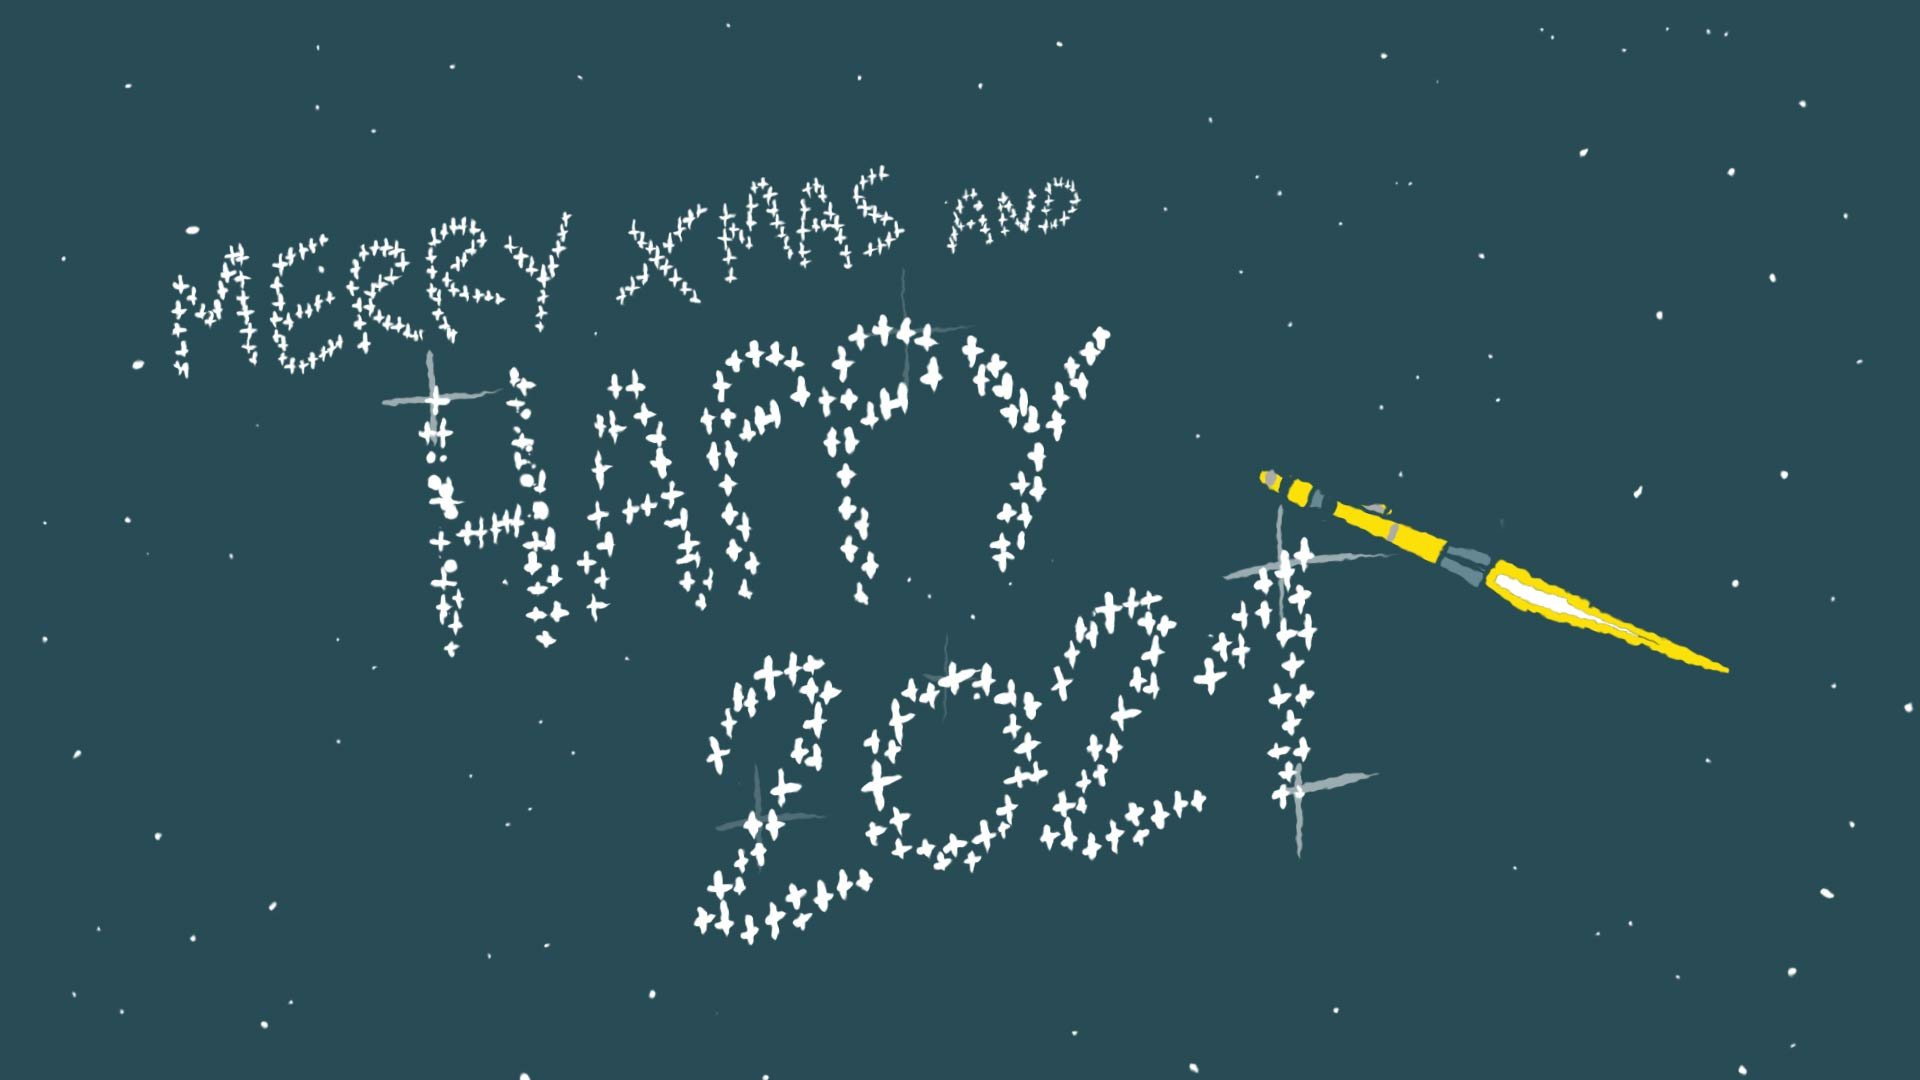 Season's Greetings from Martel Innovate. From Horizon 2020 to Horizon Europe – our next call to adventure!